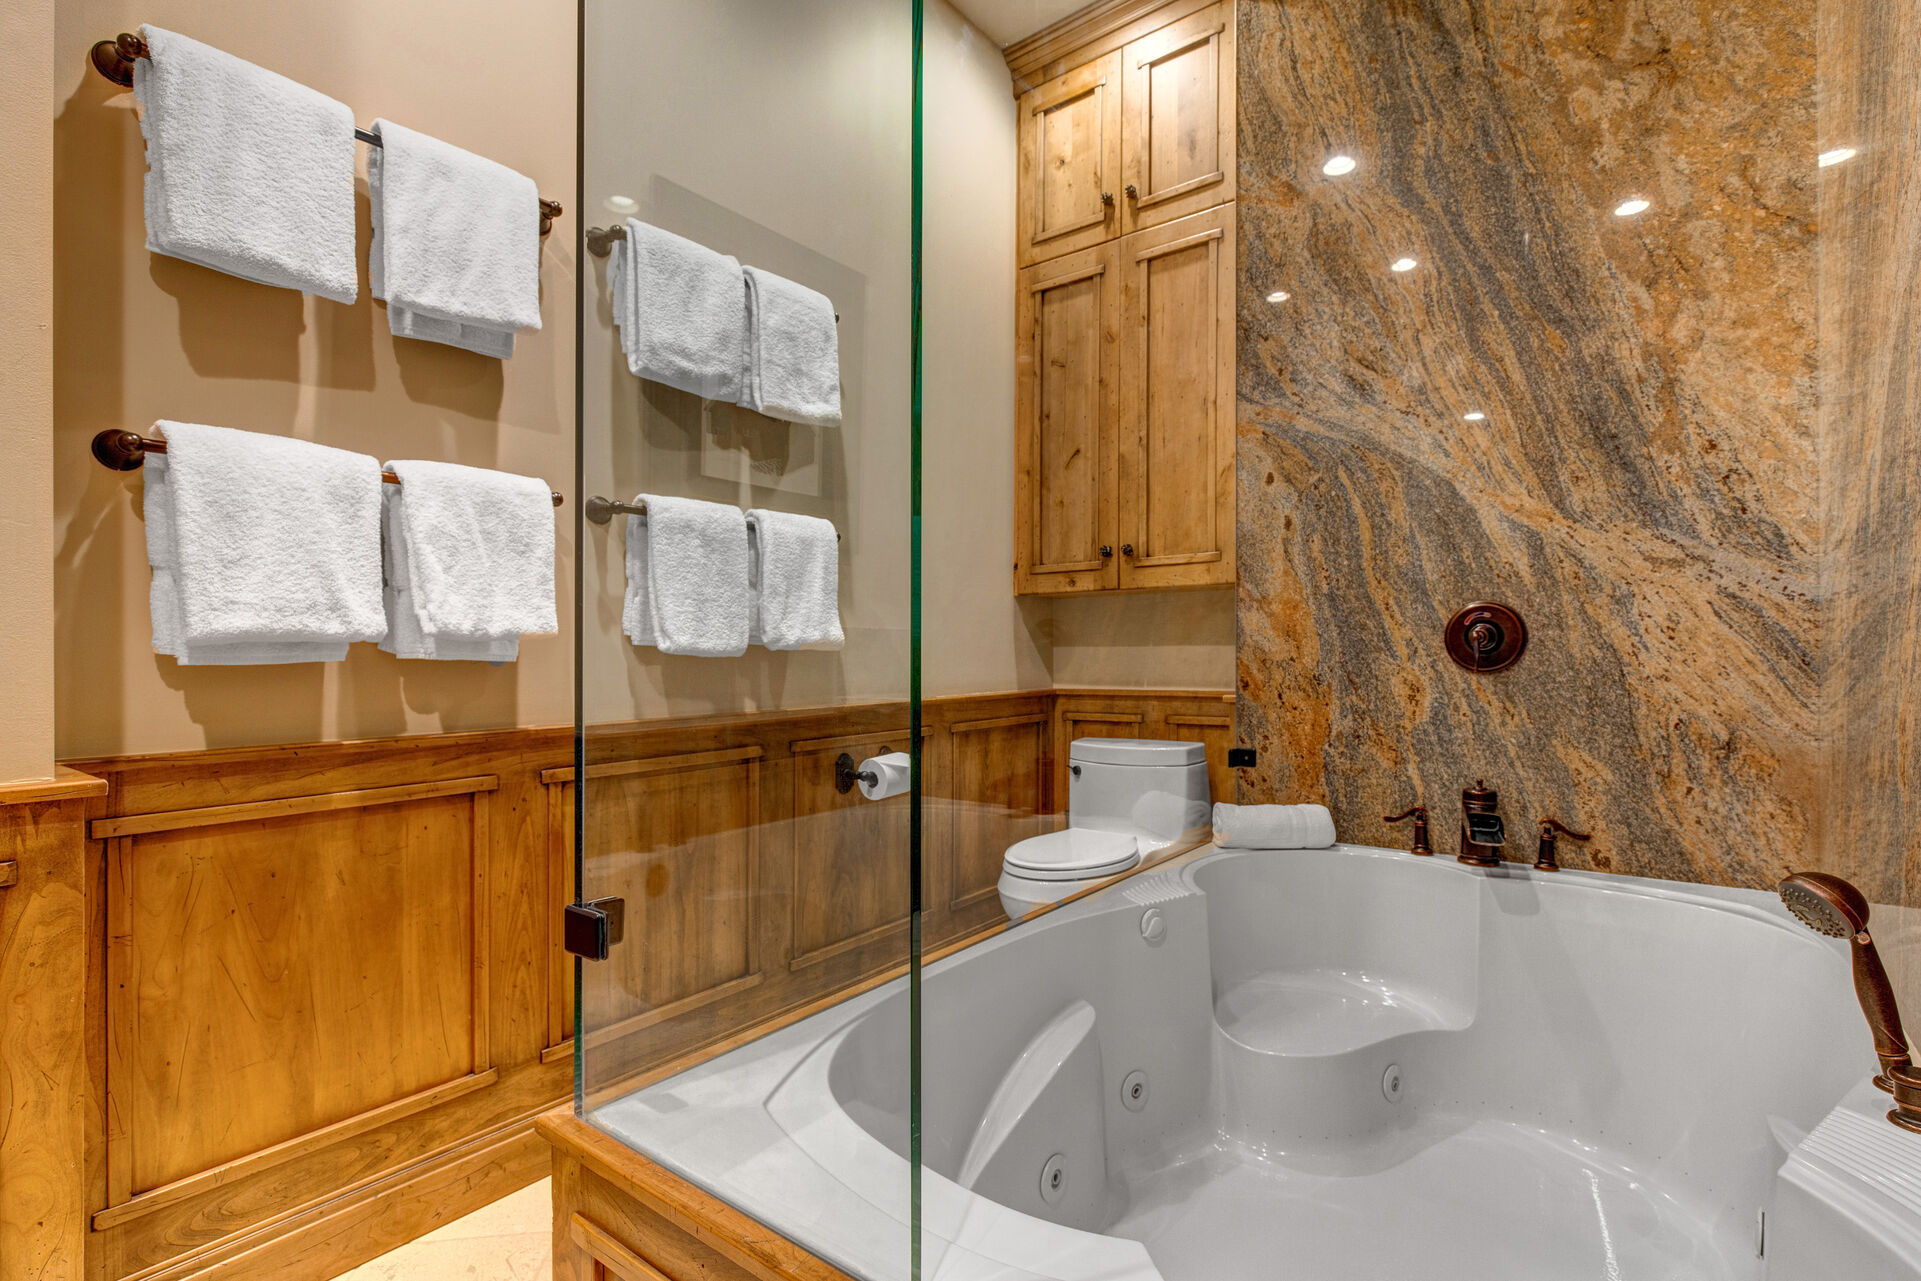 Large Jetted Tub/Shower Combo